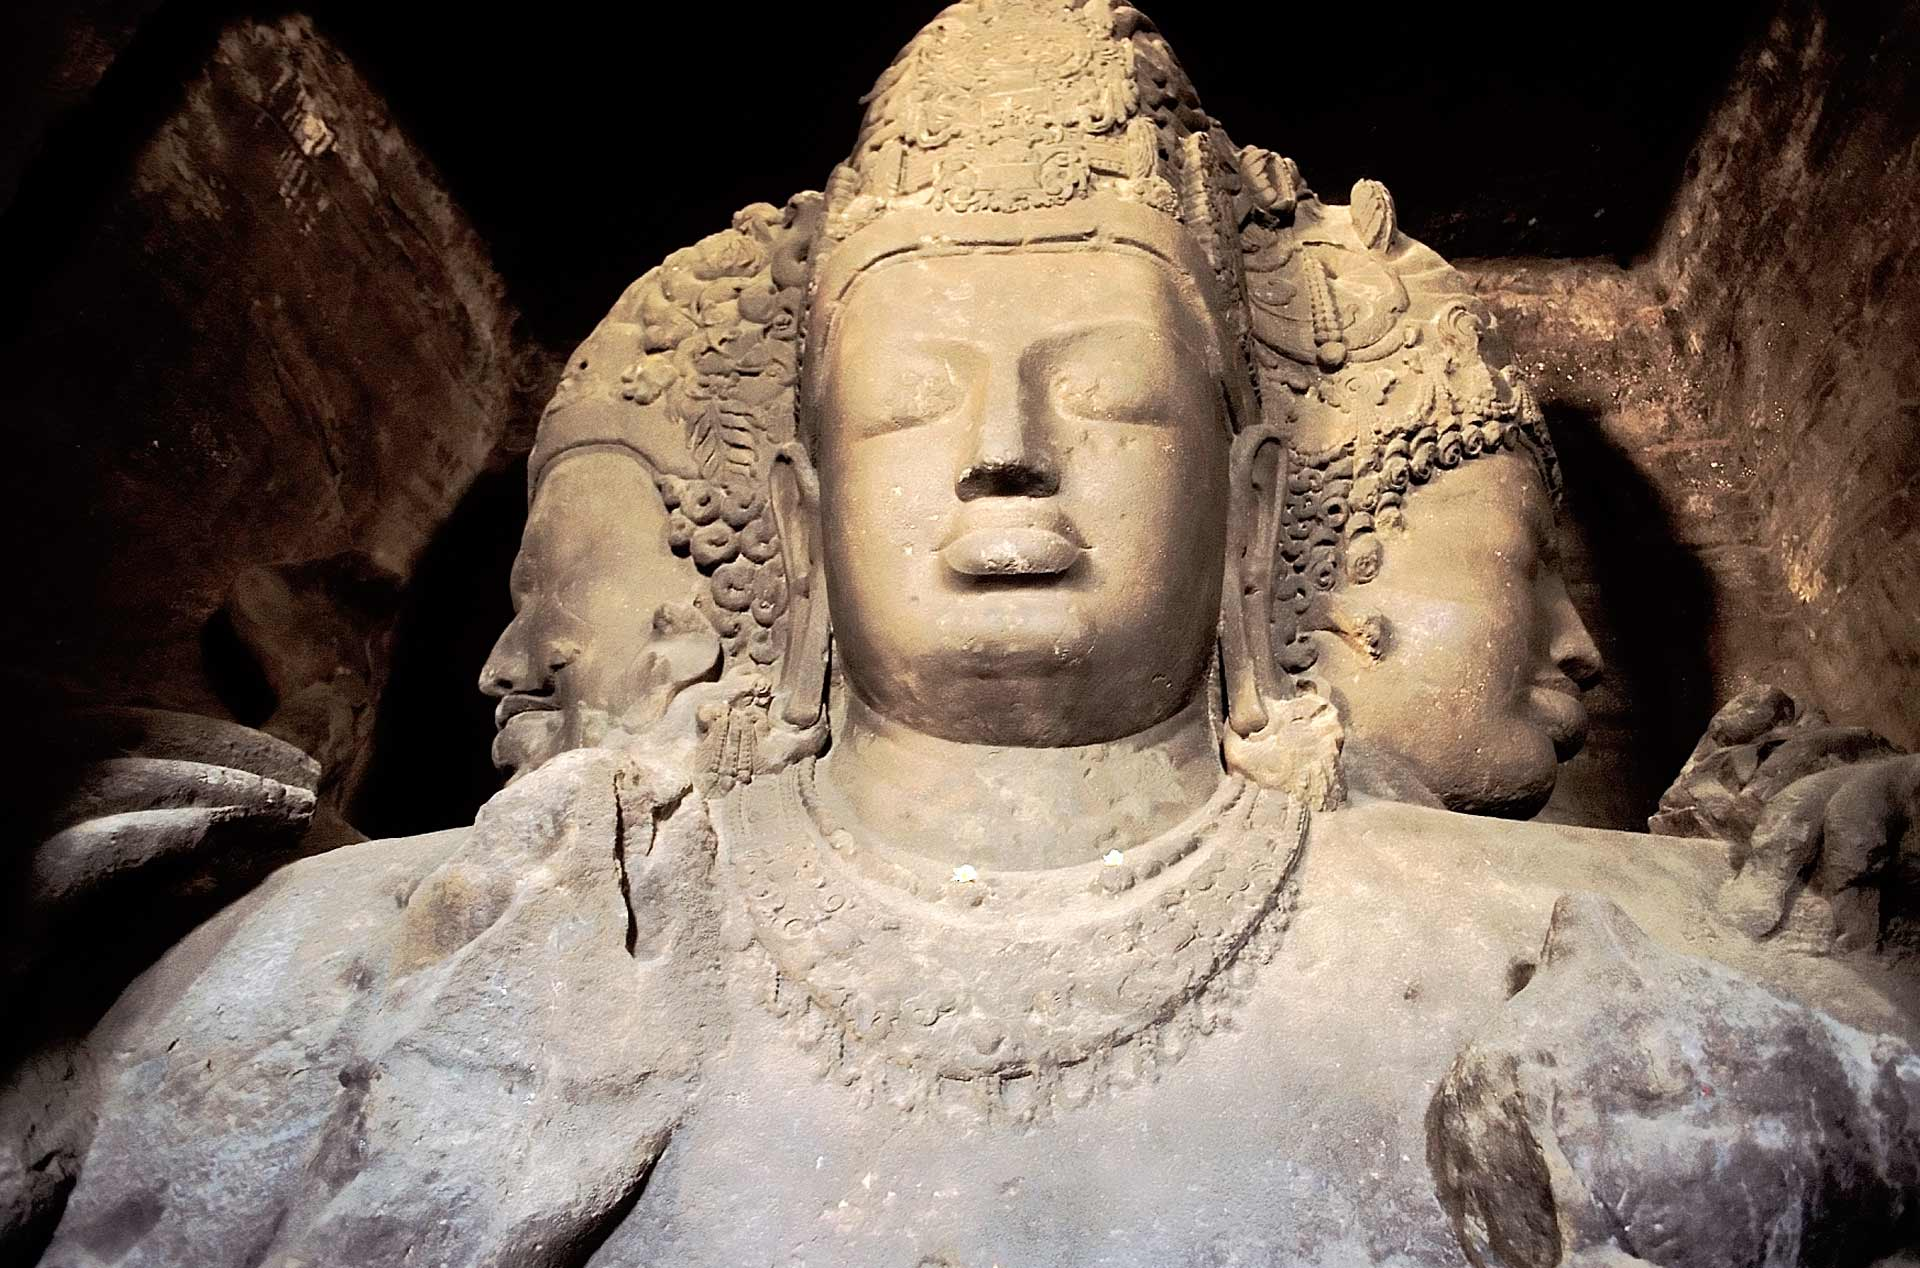 Mahadeva the three faces of Sadashiva sculpture at Elephanta Island, Maharashtra, India